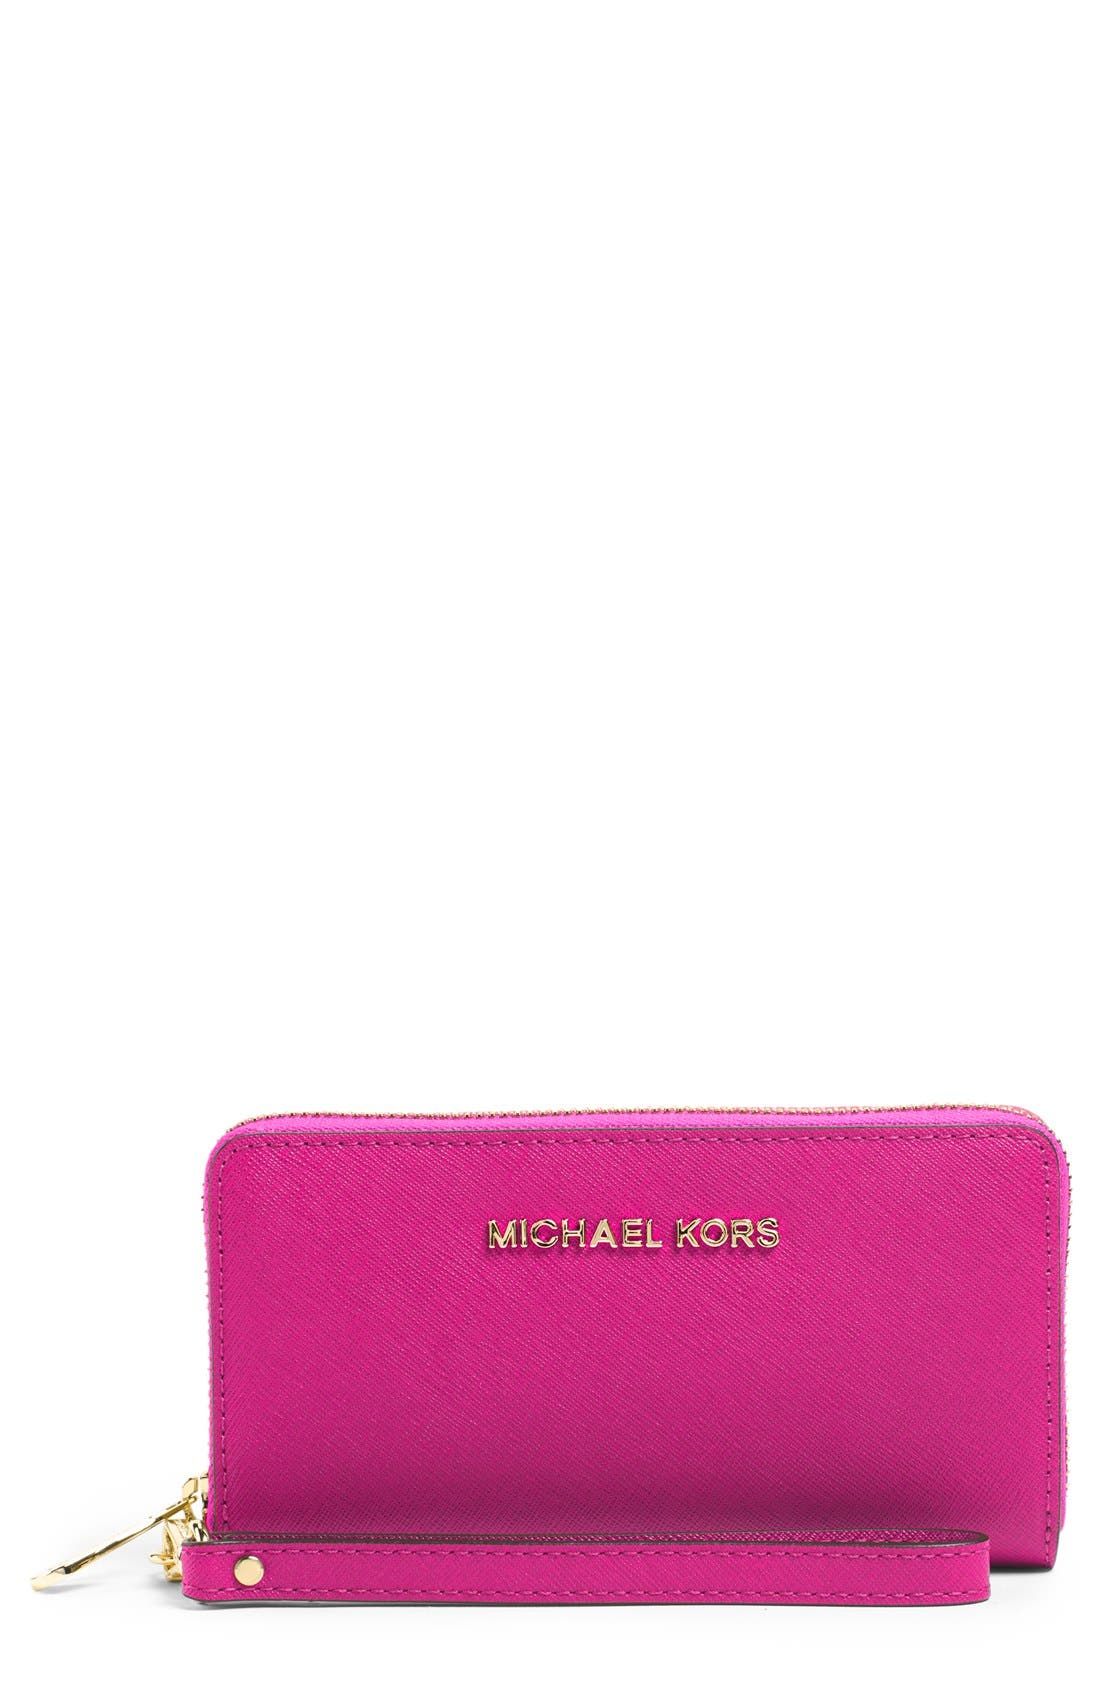 Alternate Image 1 Selected - MICHAEL Michael Kors 'Large Jet Set' Saffiano Leather Phone Wristlet